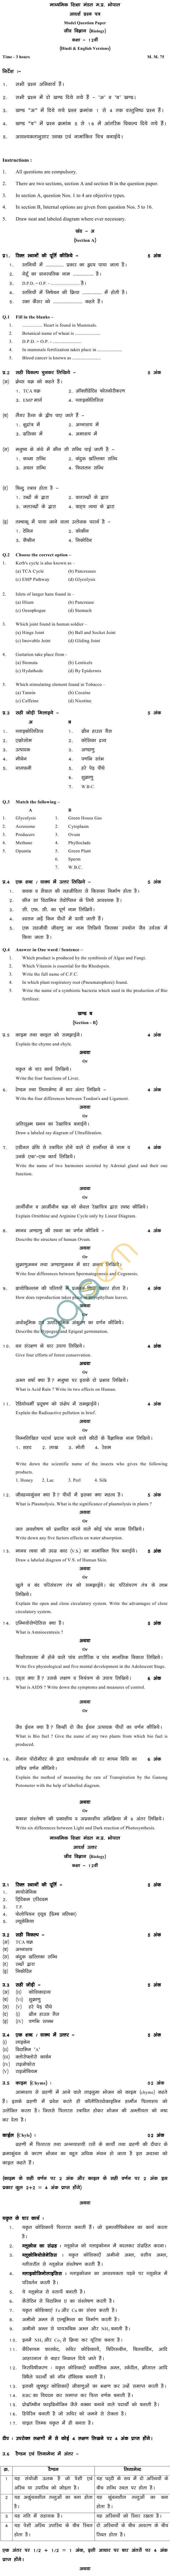 MP Board Class XII Biology Model Questions & Answers – Set 1